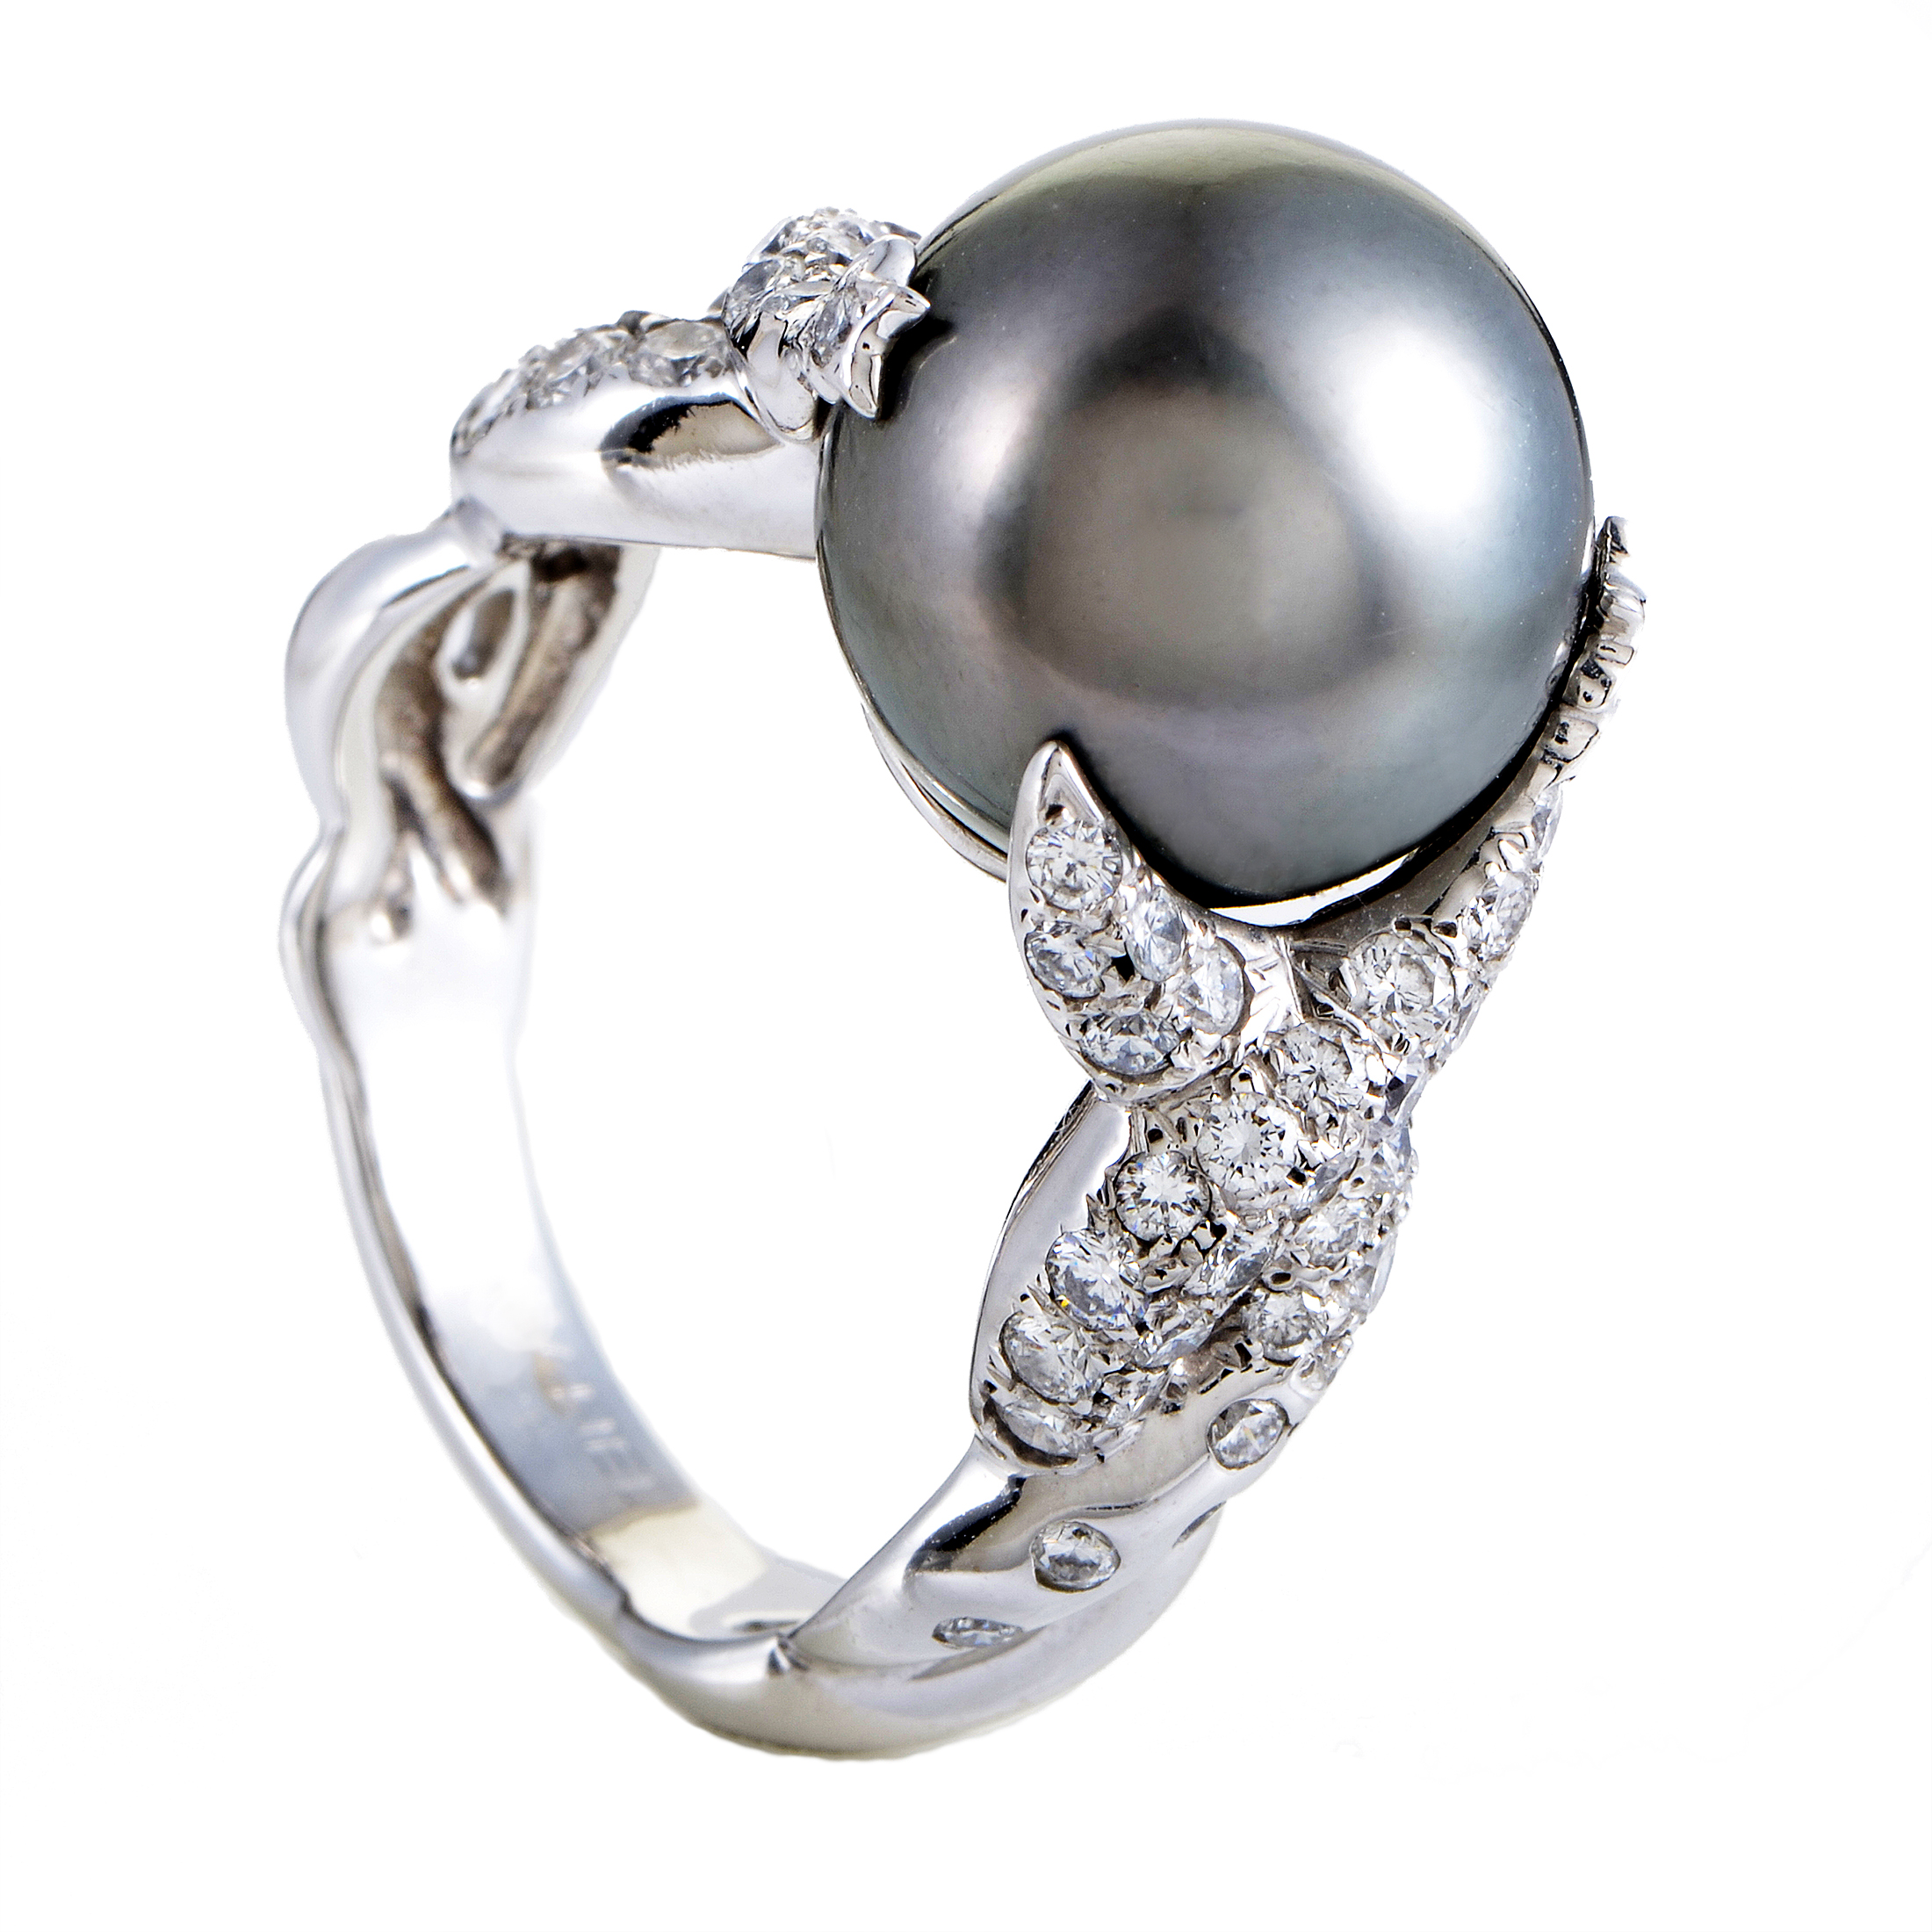 Chanel Women's 18K White Gold Diamond & 12mm Black Tahitian Pearl Ring